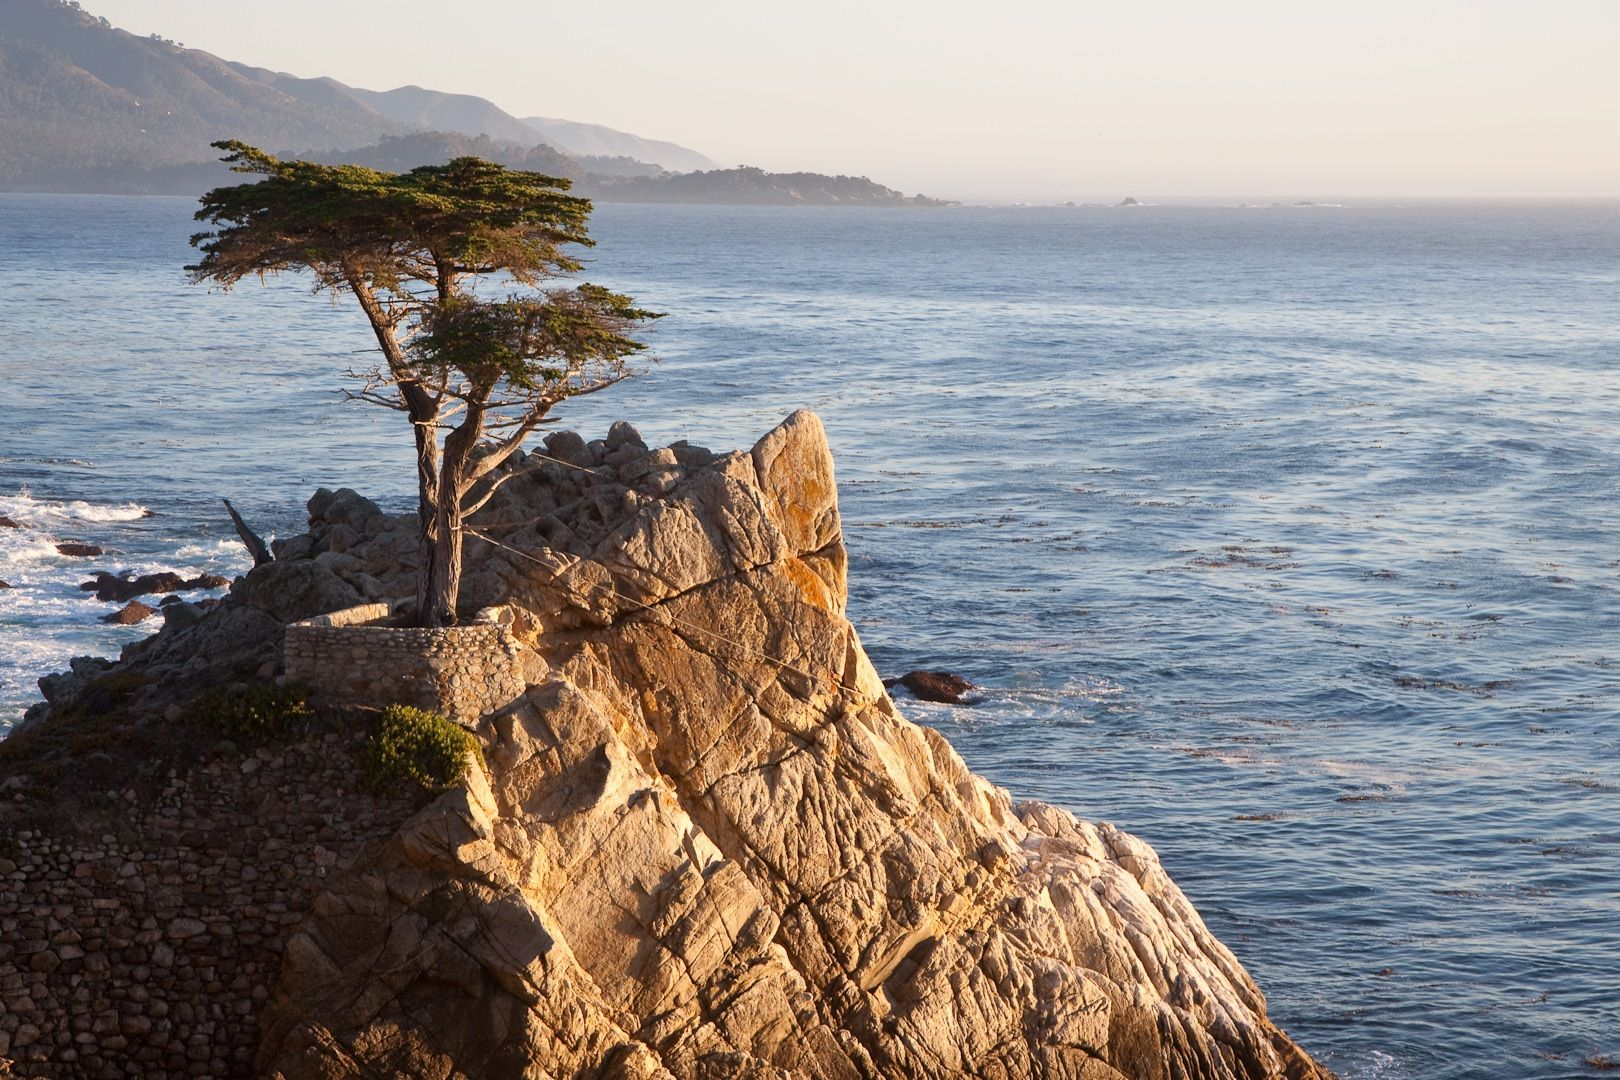 The Monterey cypress. © Christian Mehlfuhrer, Flickr by nc-sa 3.0